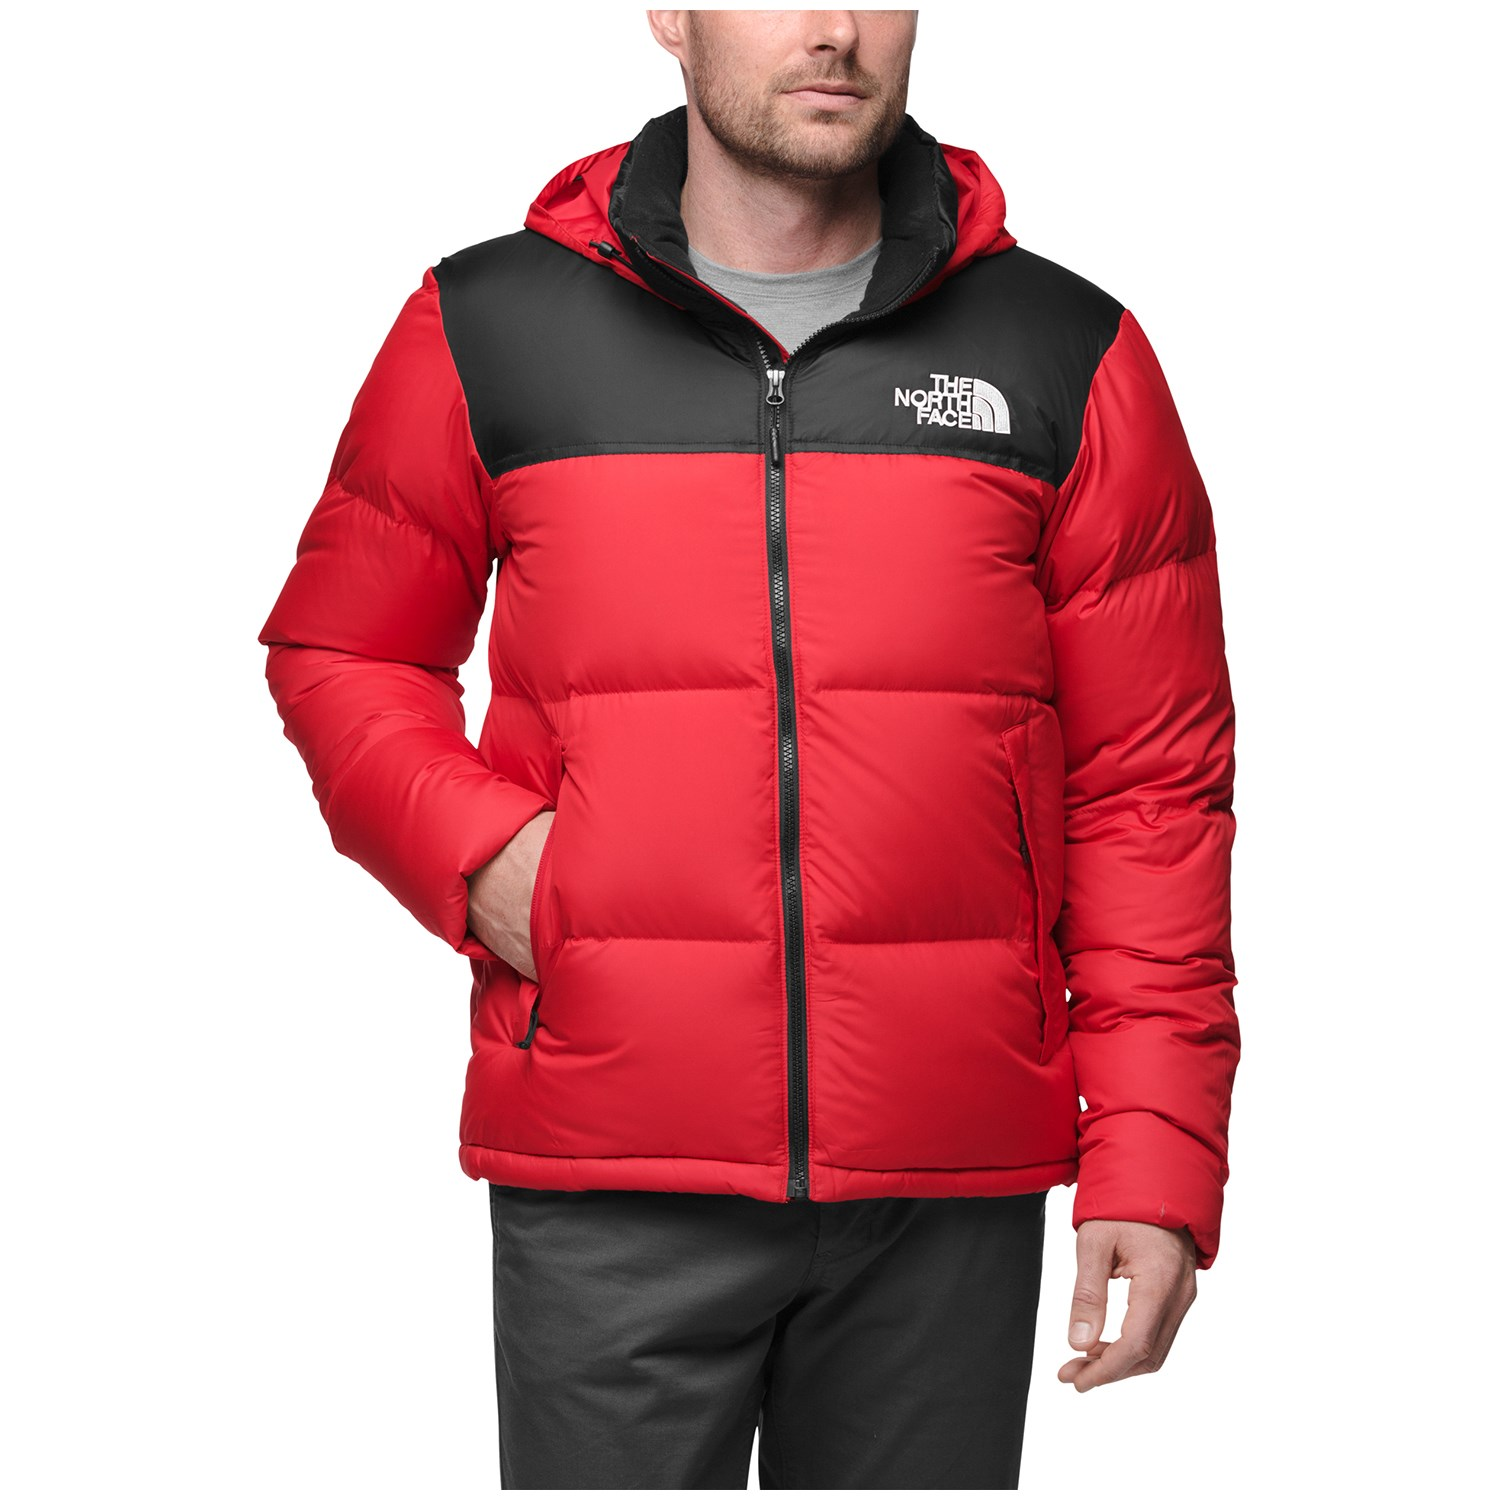 2bea812bf4 The North Face Novelty Nuptse Jacket